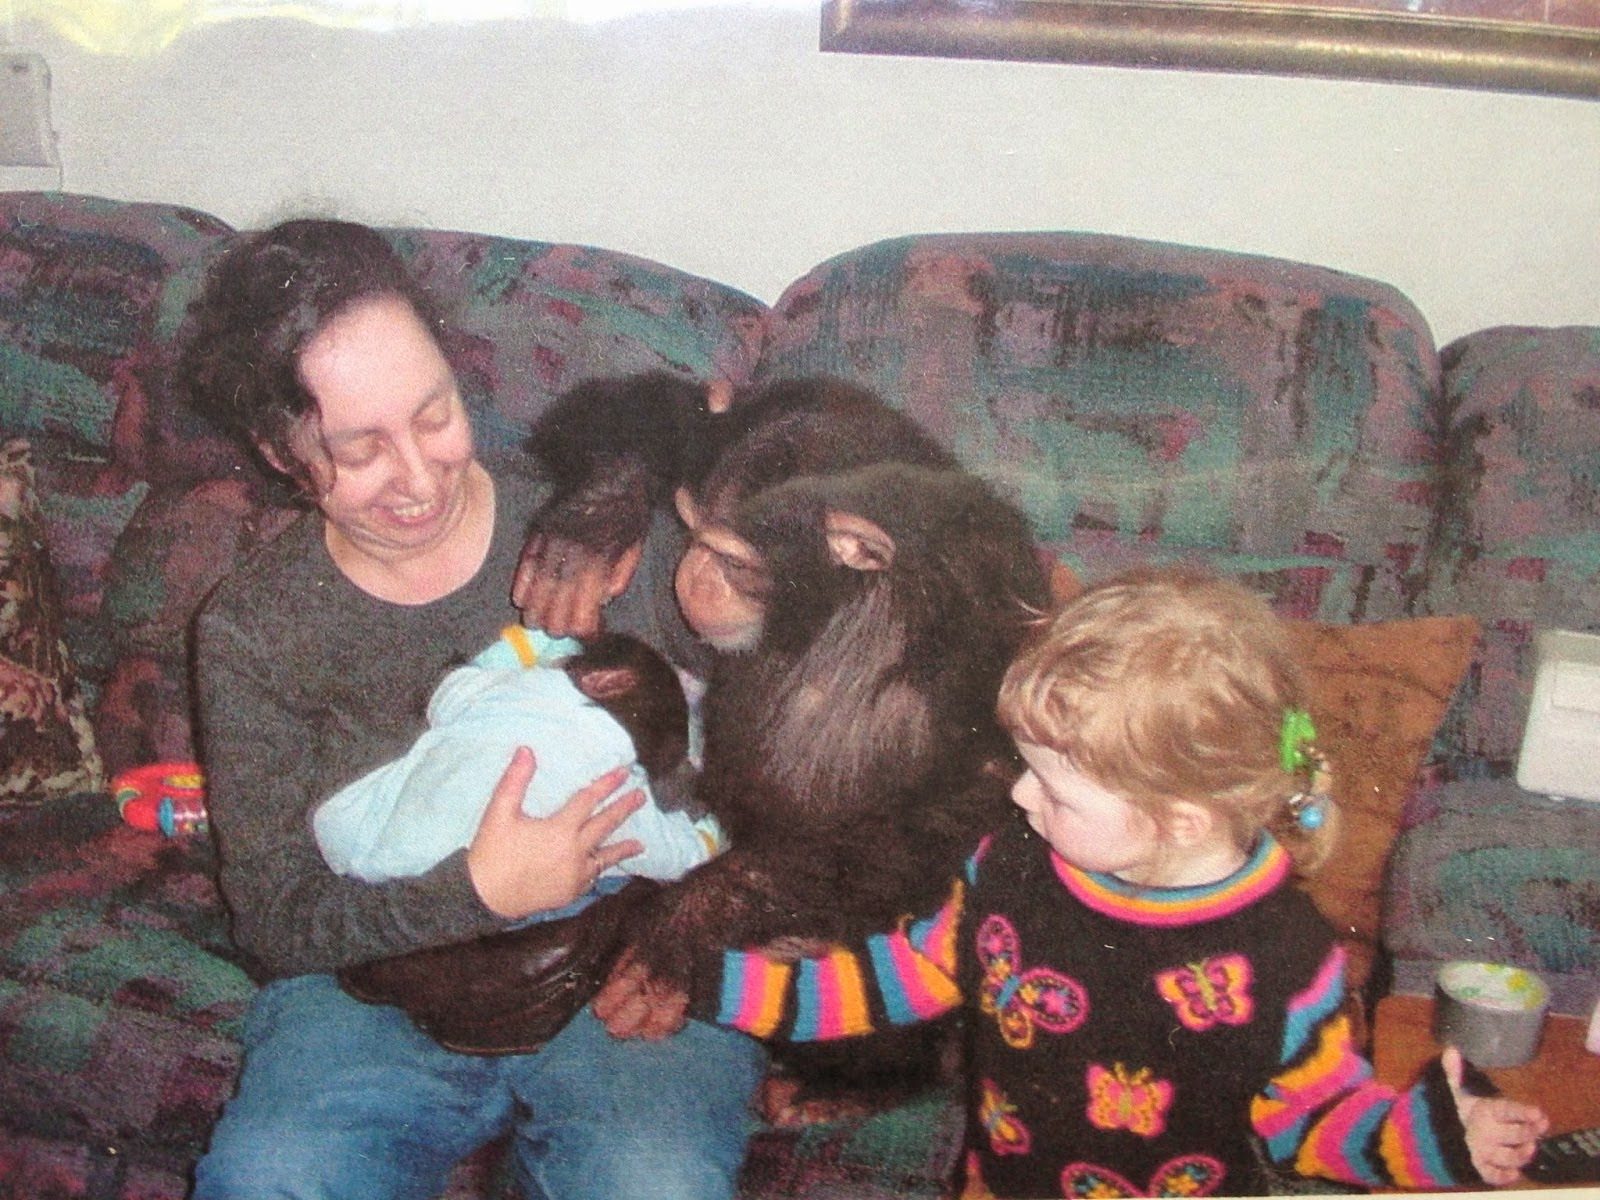 Chimp Trainer's Daughter: What happens to baby pet chimp when he